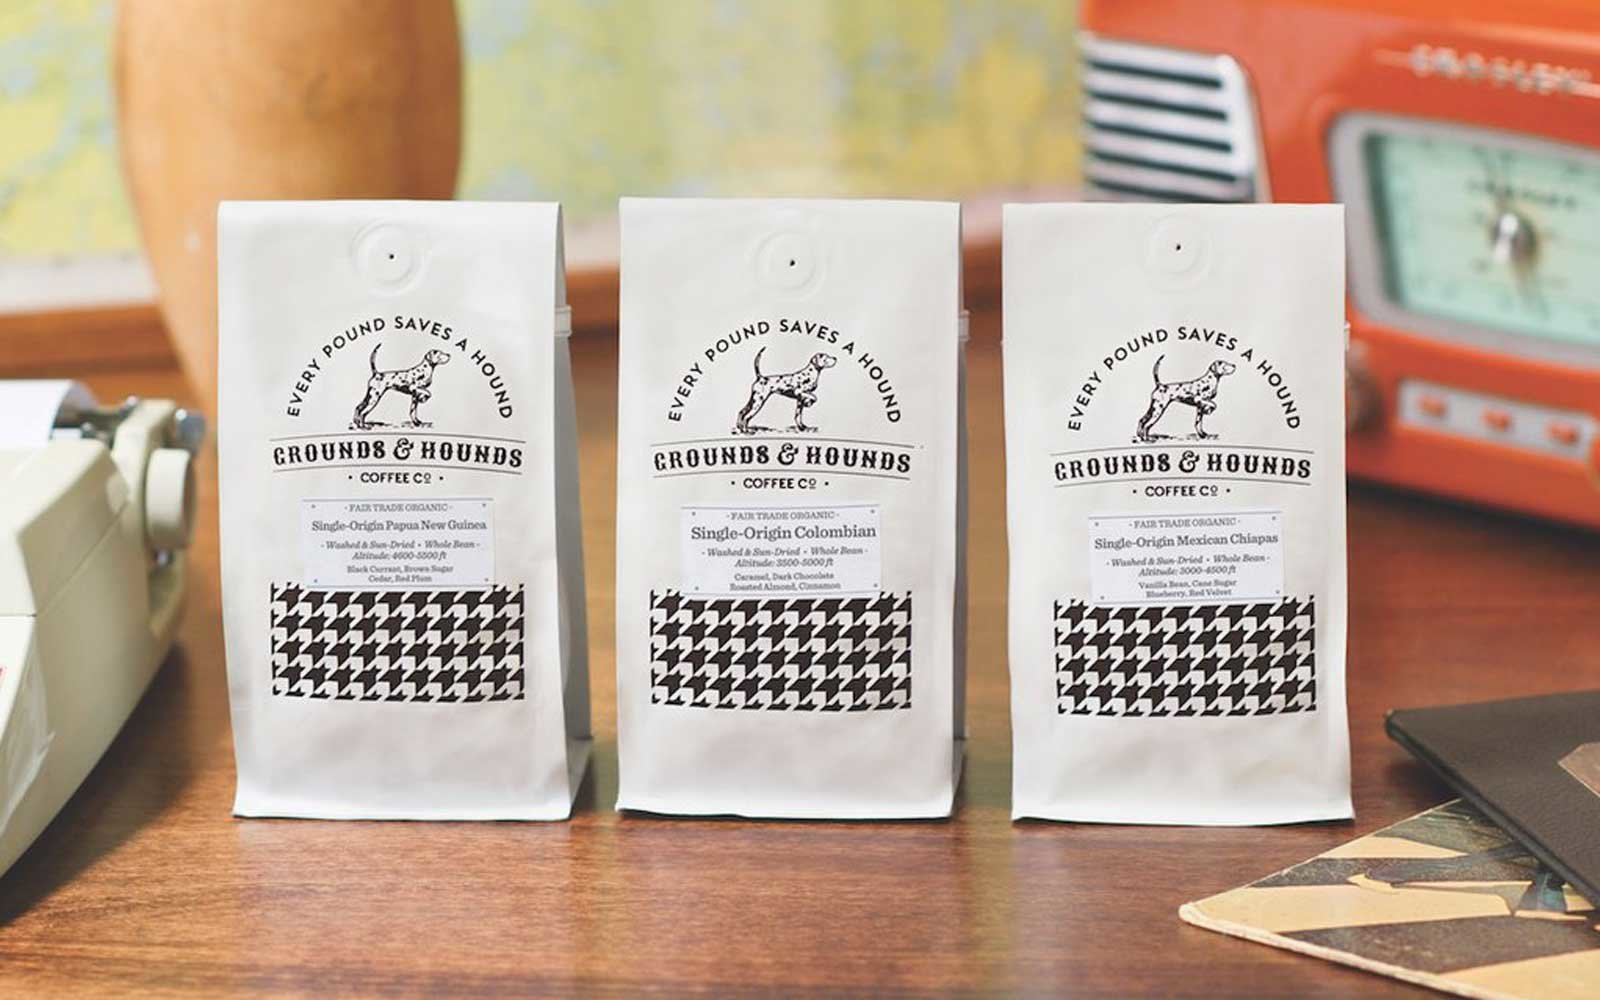 Single Origin Explorer's Kit from Grounds & Hounds